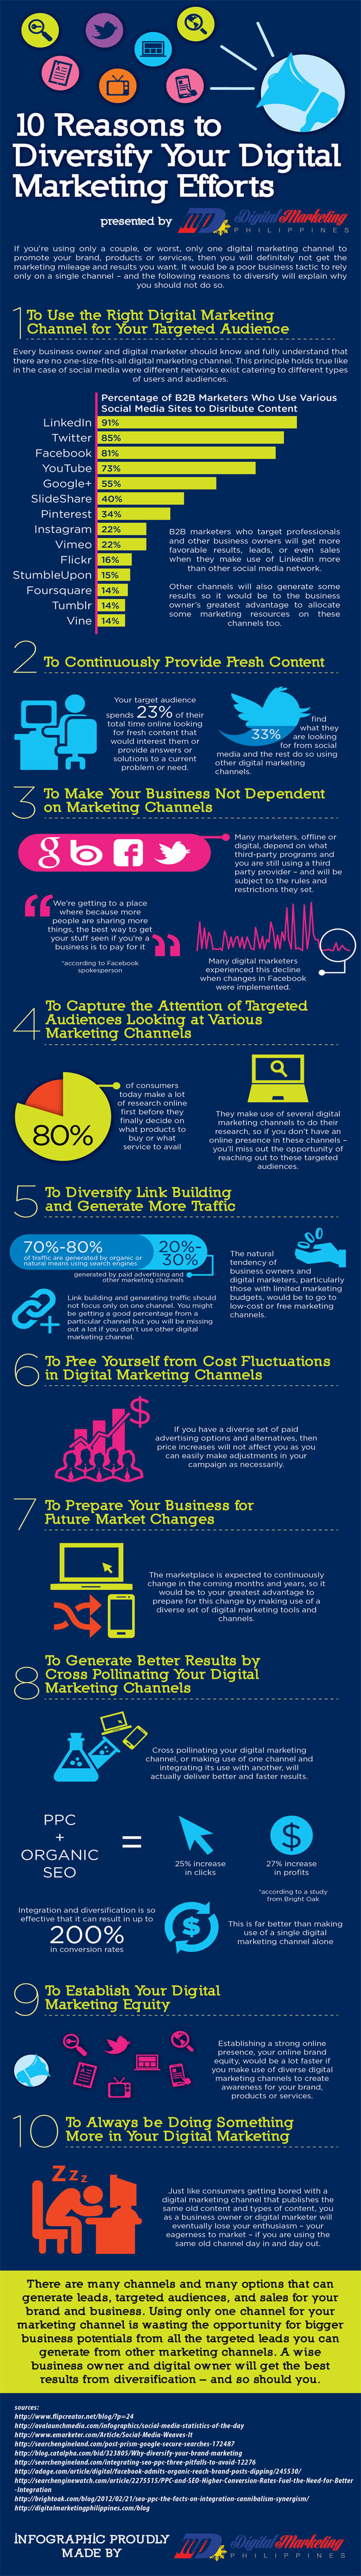 infographie diversifier votre marketing digital